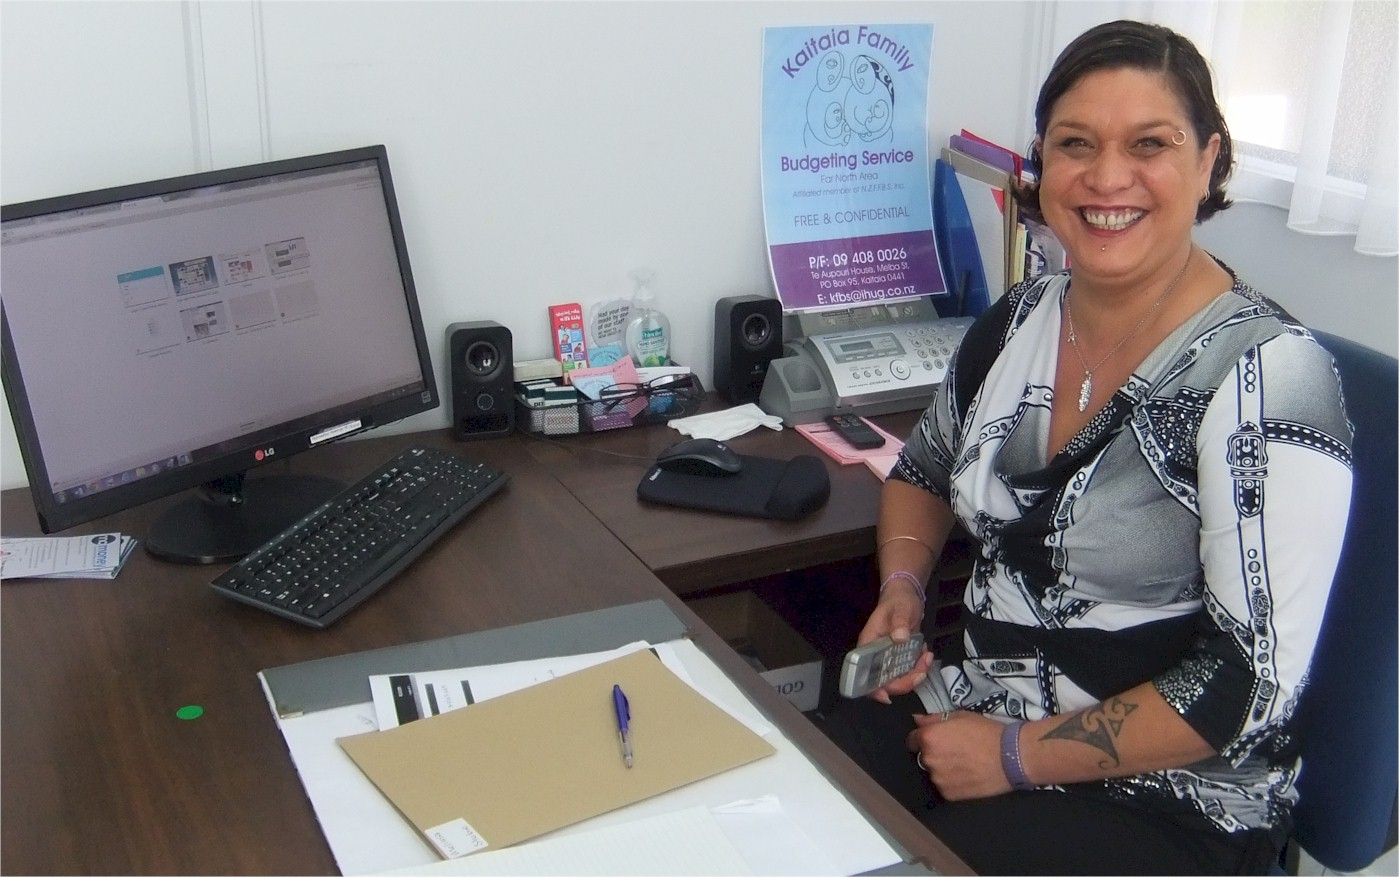 Budgeting Services? No problem! Tania in her office doing the job she loves! She can now enjoy a Christmas without stress and so can her clients thanks to her budgeting skills.